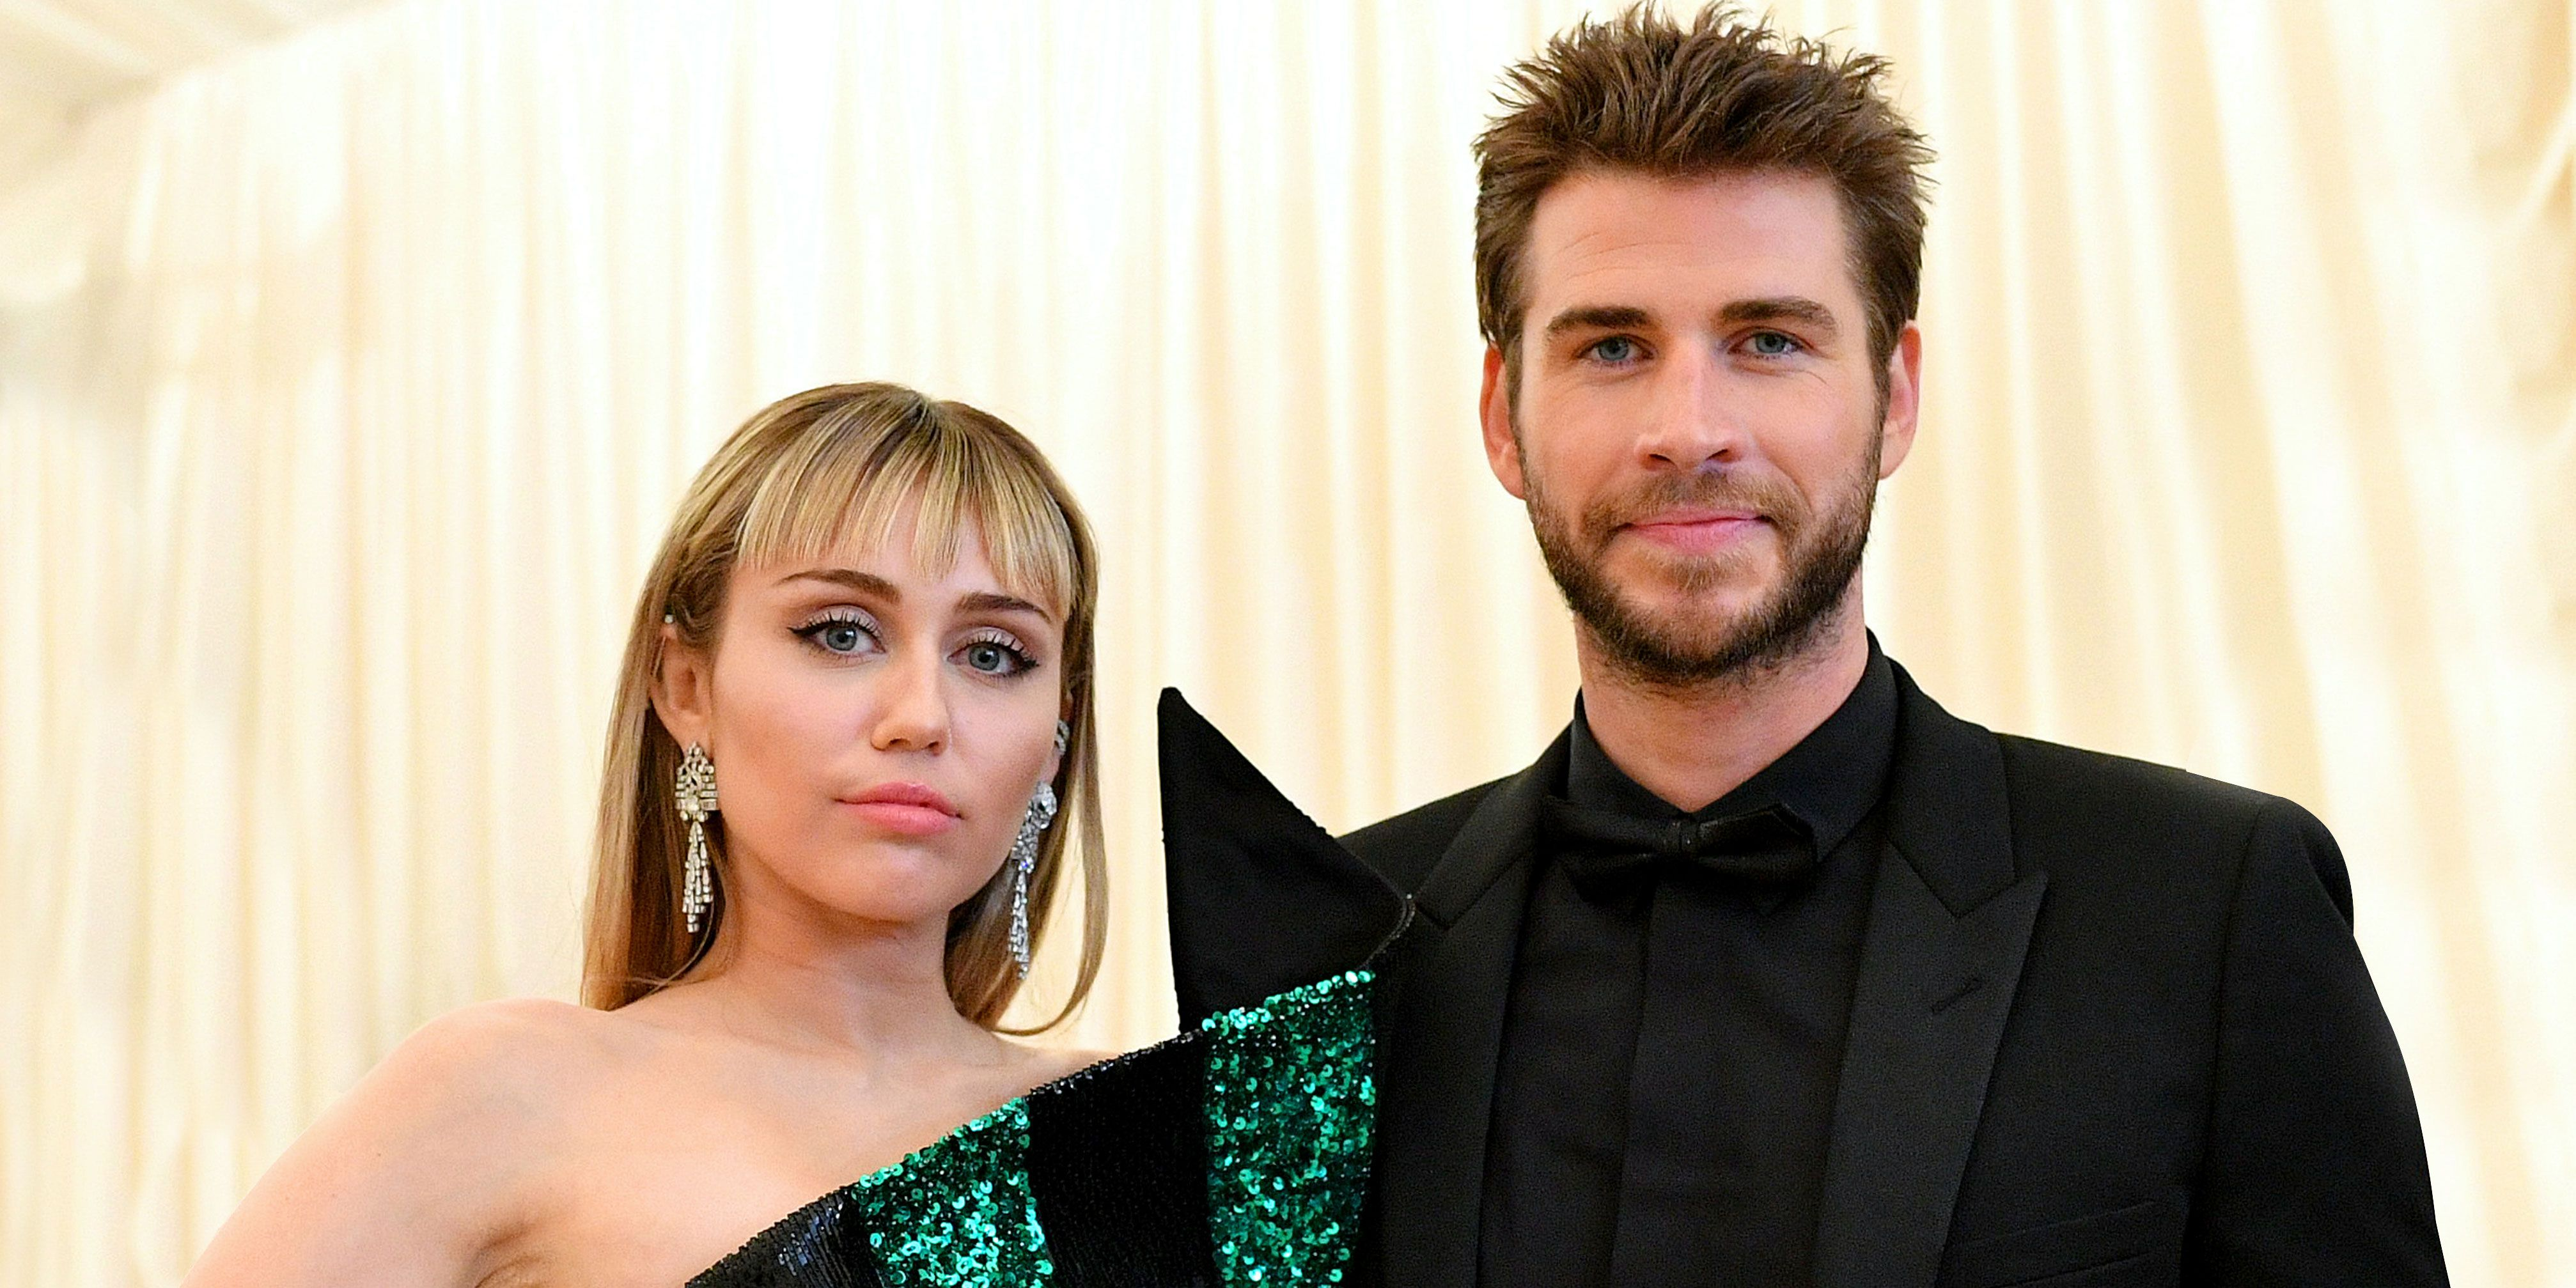 Miley Cyrus Implied Liam Hemsworth Is Not a Good Person During Instagram Live